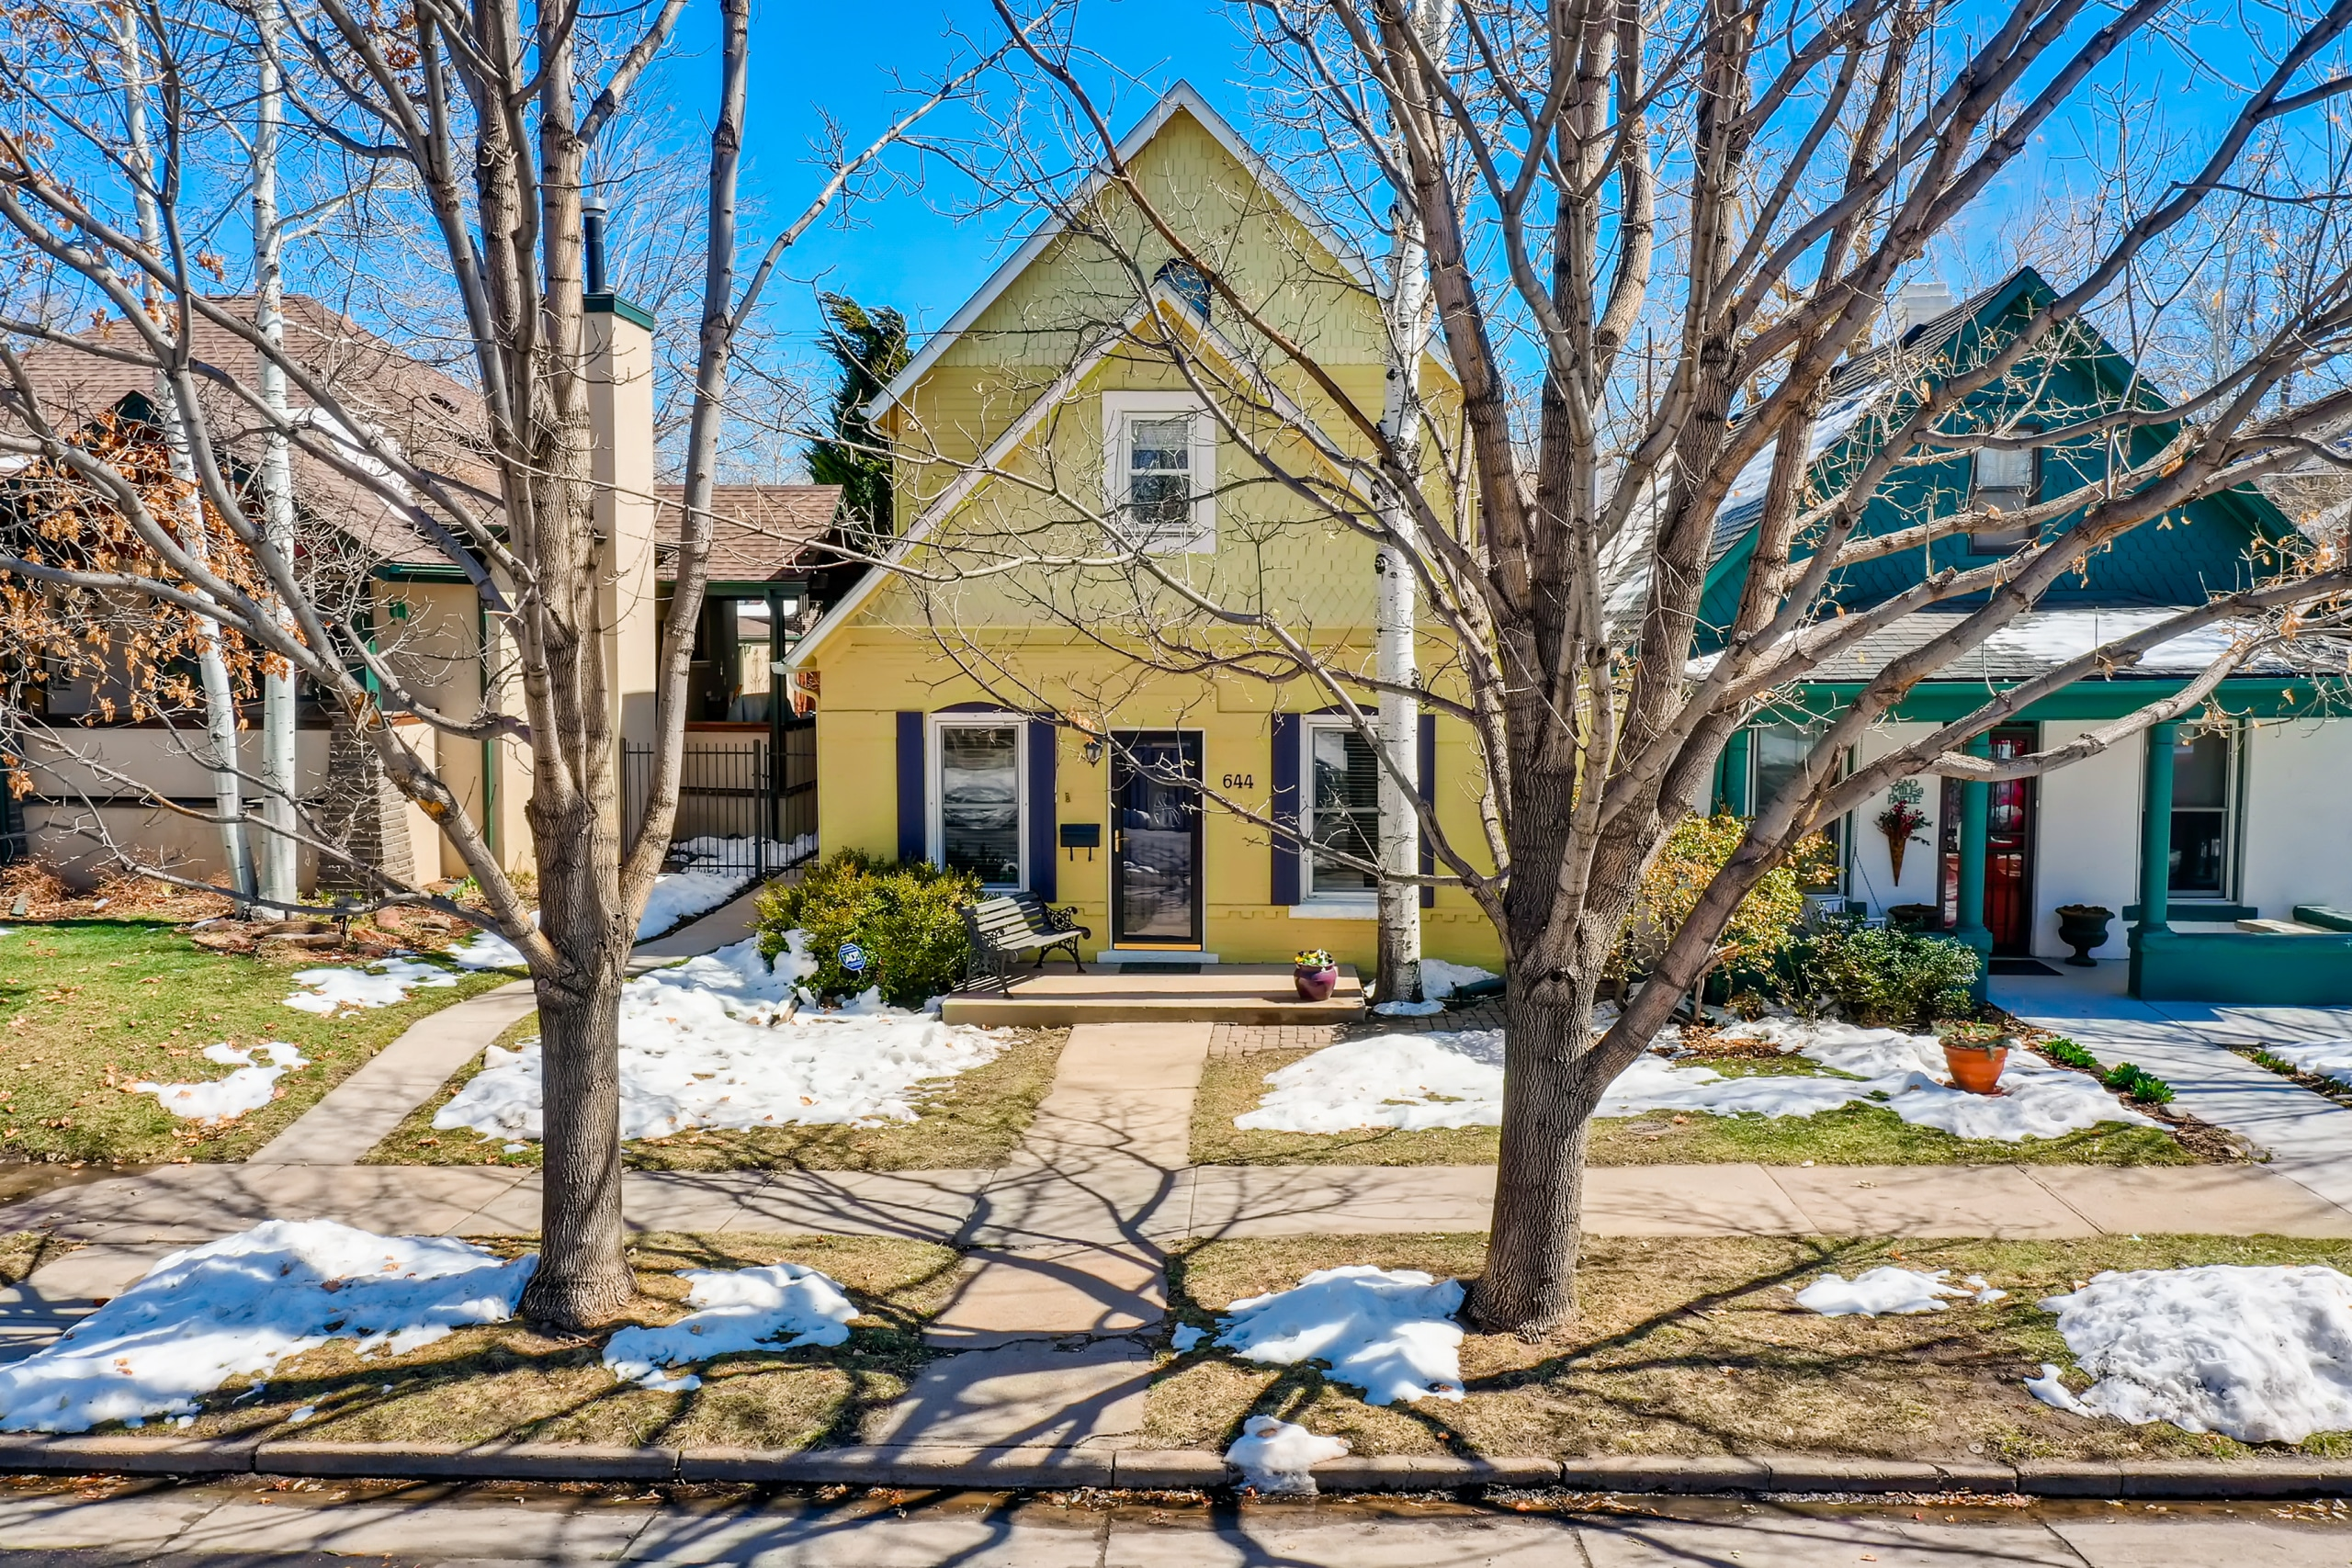 Washington Park Home, 1890 Victorian, Charming, Updated, Vaulted Ceilings